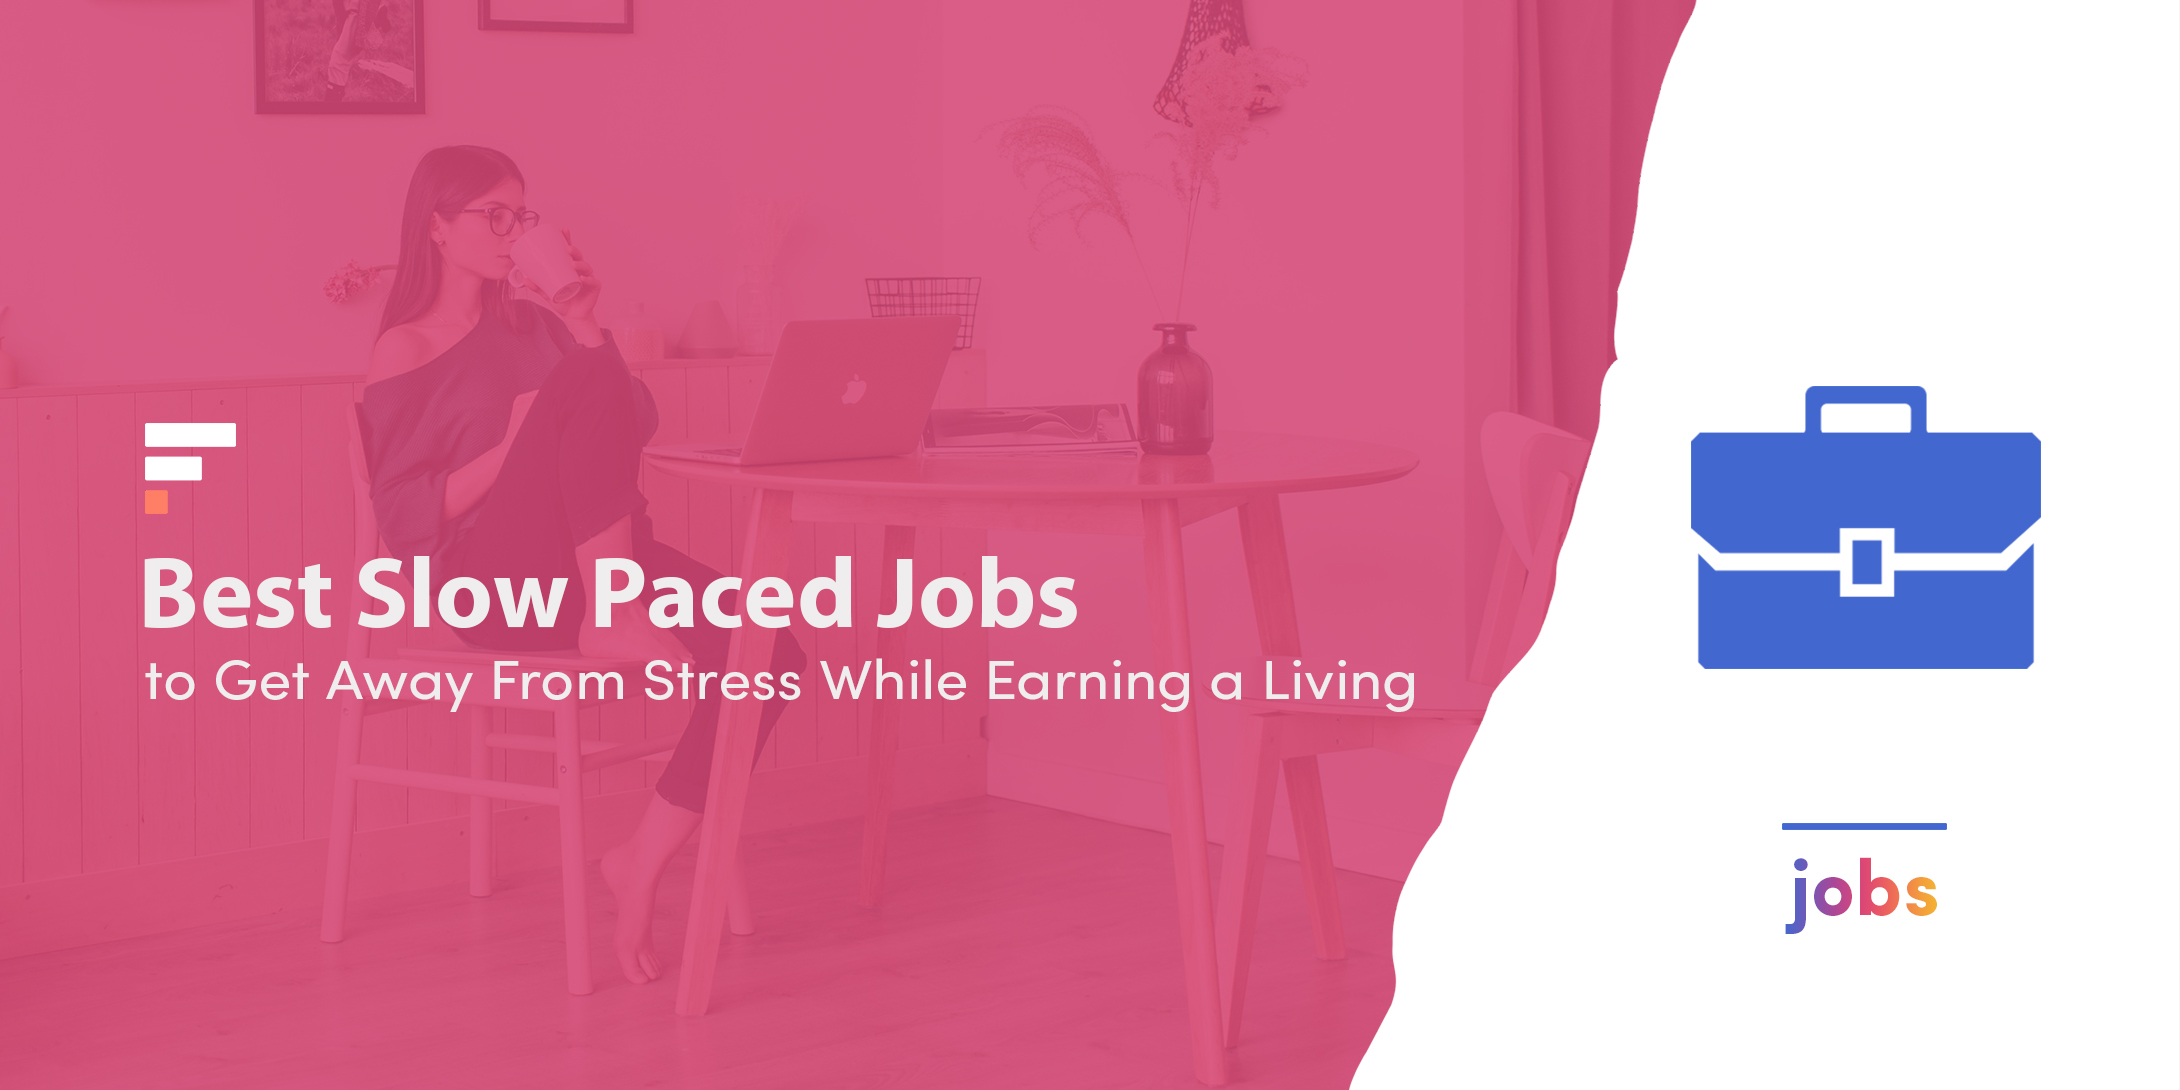 Slow paced jobs